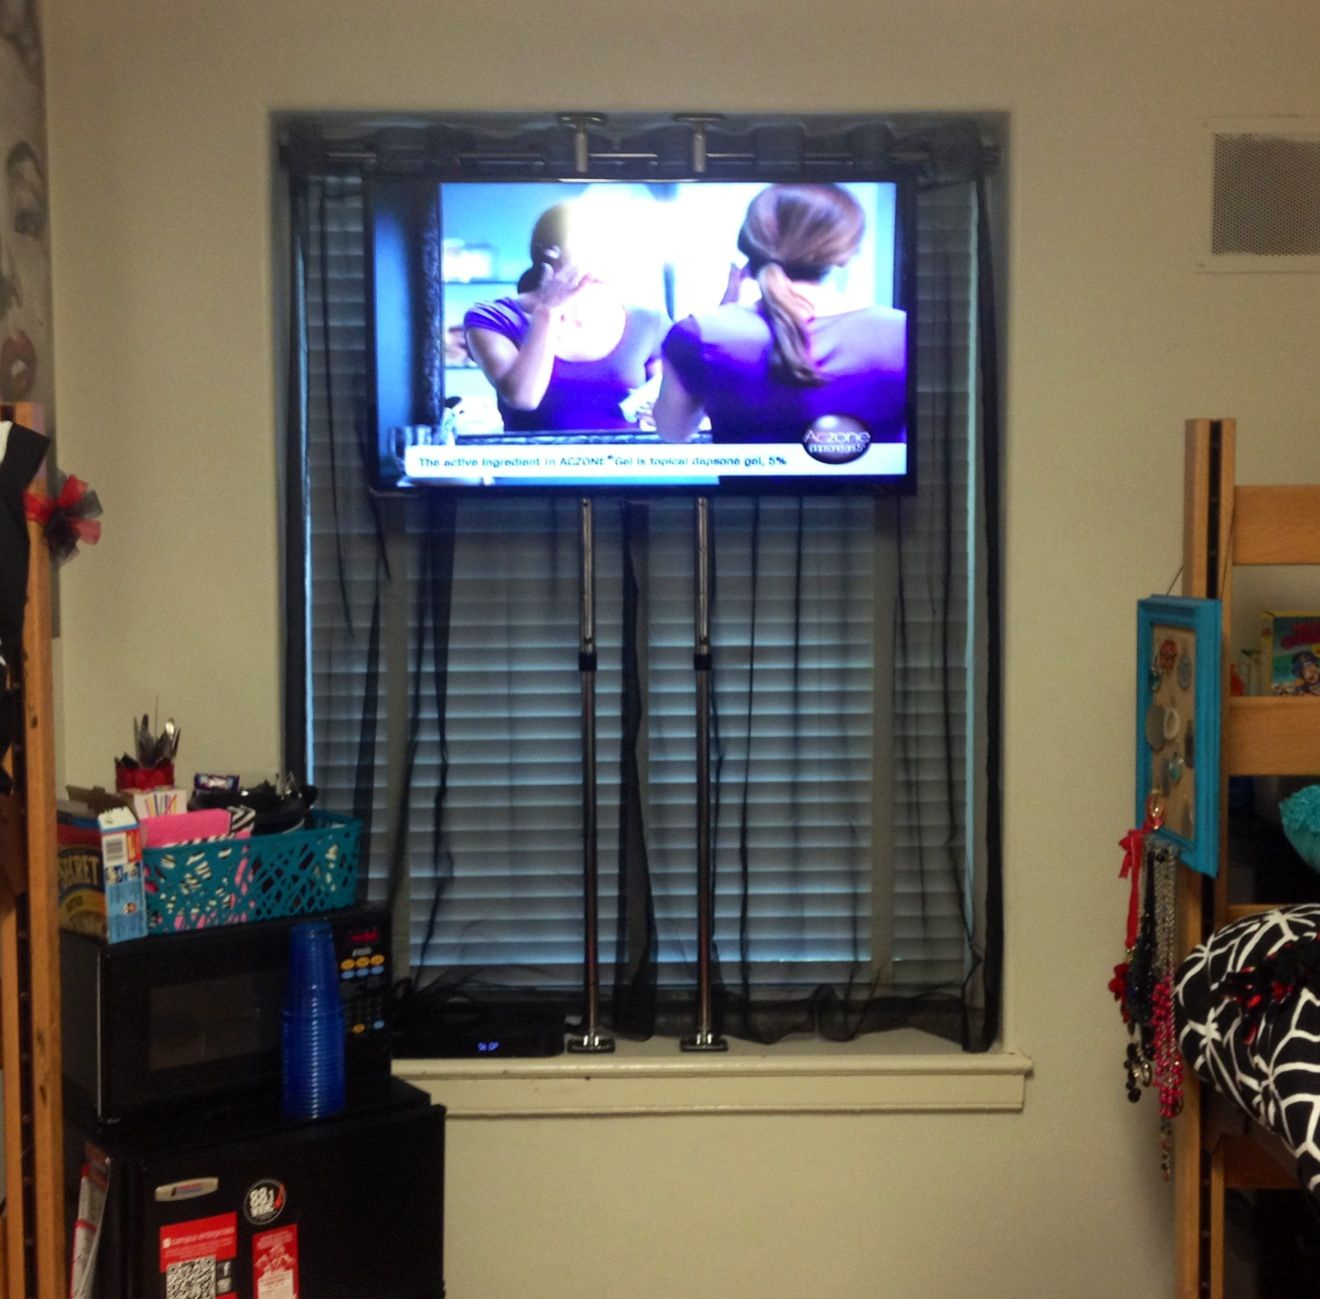 40 Flat Panel In University Dorm Room How Do You Hang A Tv When Can T Mount Anything To The Walls